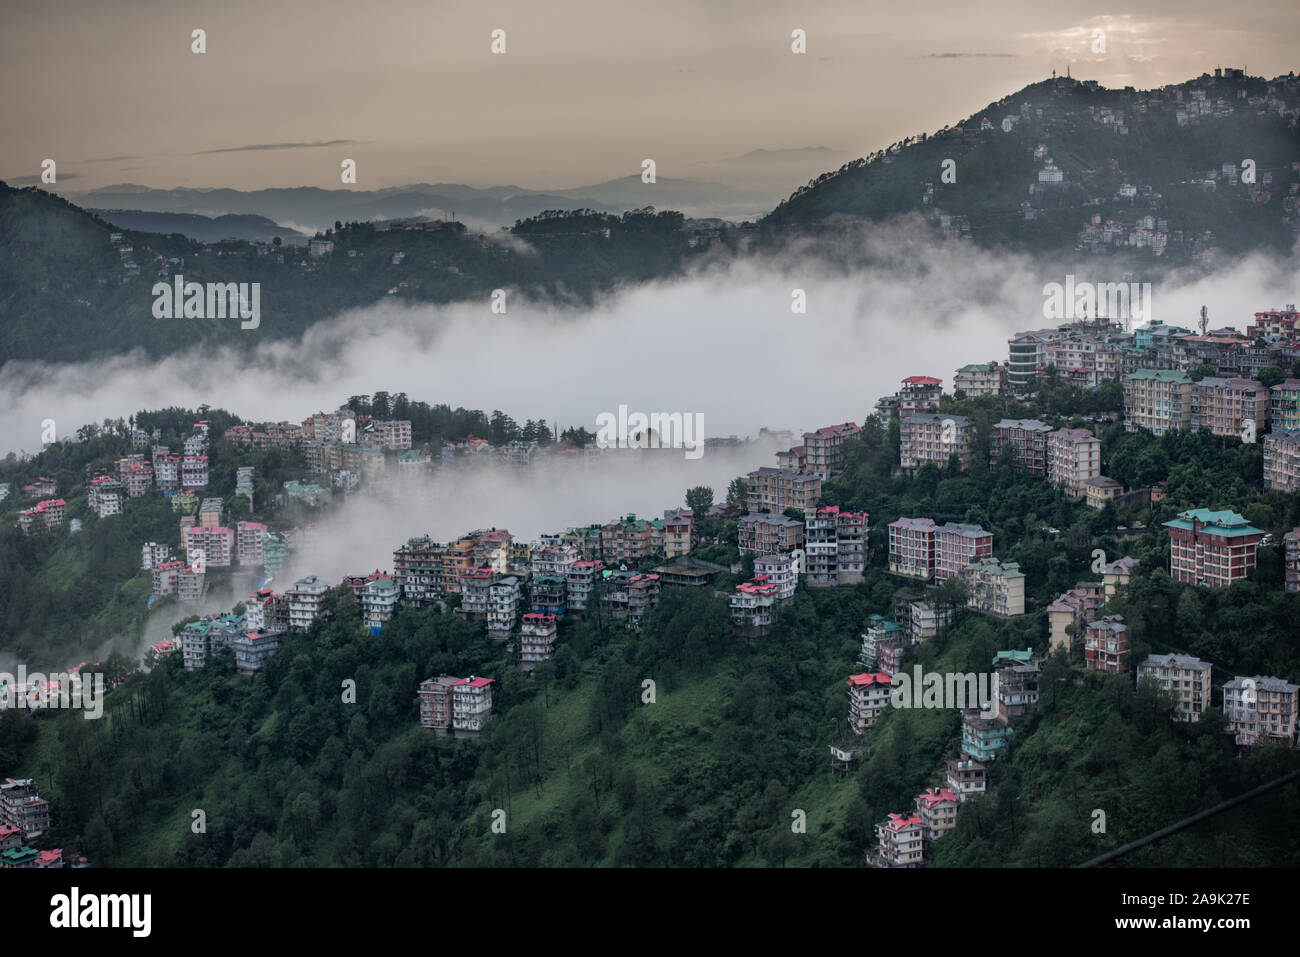 Buildings dotted around the misty mountains during the monsoon season in the Himalayas. Hills around Shimla, Himachal Pradesh, India Stock Photo